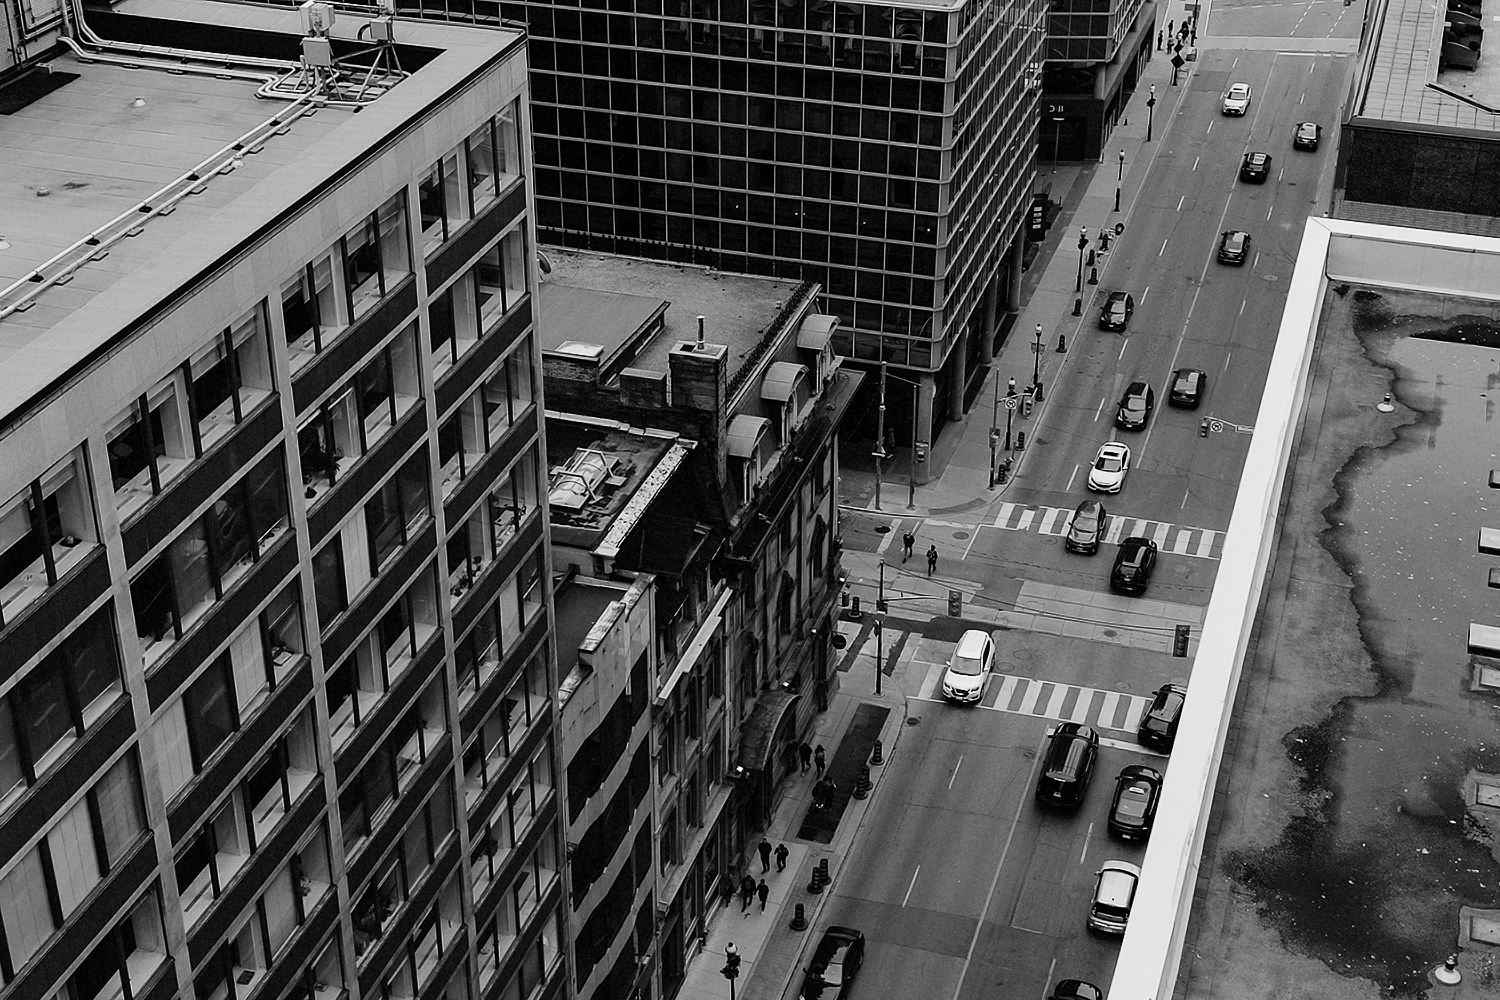 30-Best-Wedding-Photographers-in-Toronto-3B-Photography-Editorial-Fine-Art-Analog-Wedding-Photography-Toronto-Skyline-Rooftop-View.jpg